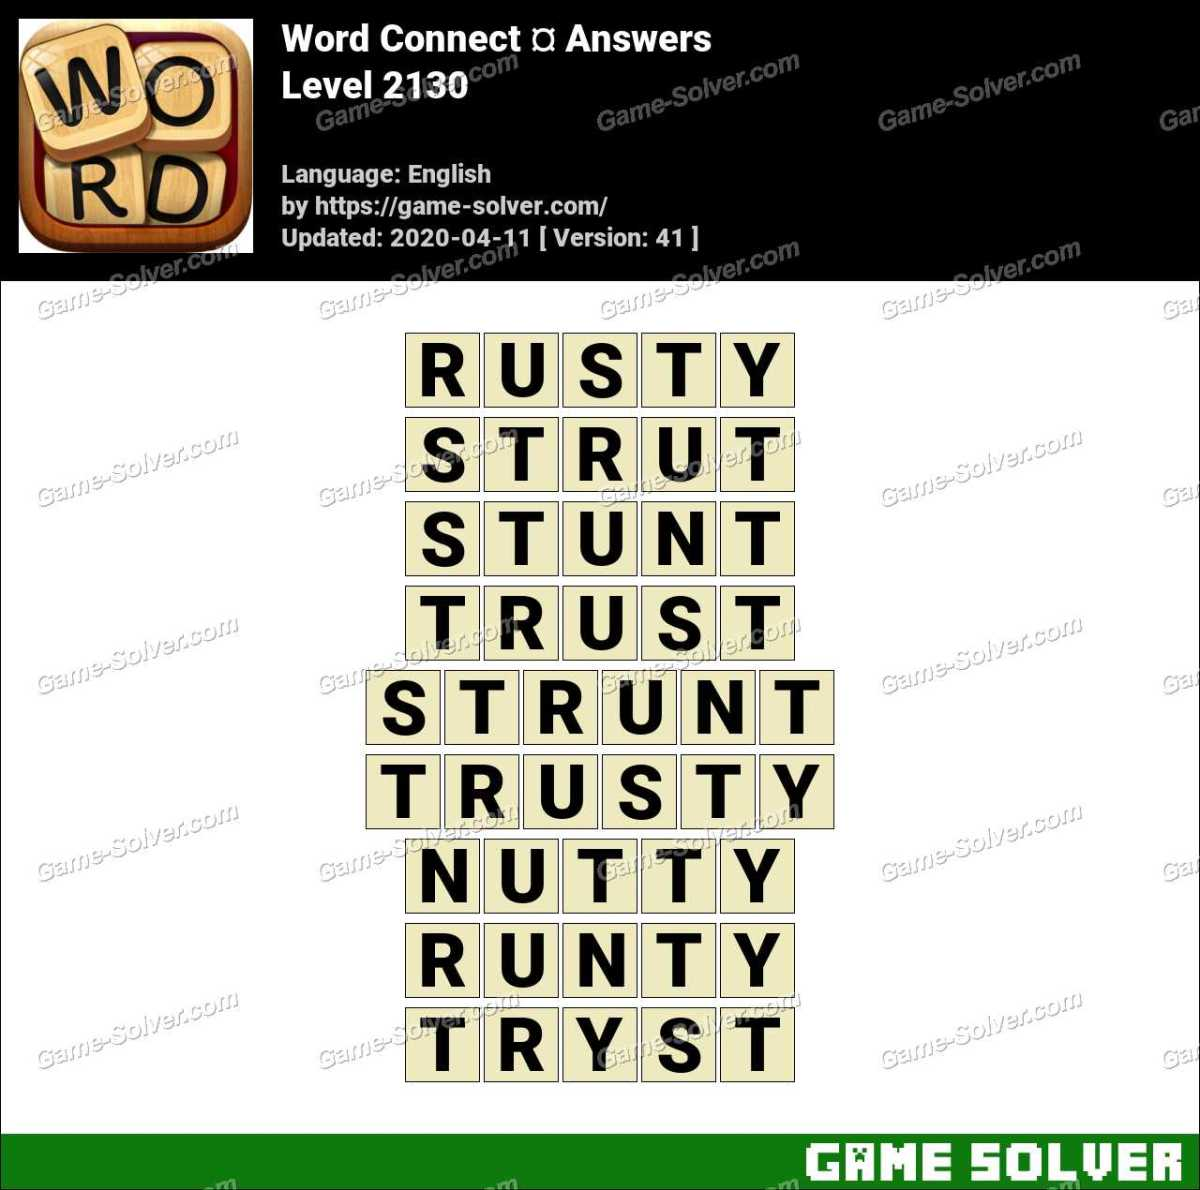 Word Connect Level 2130 Answers